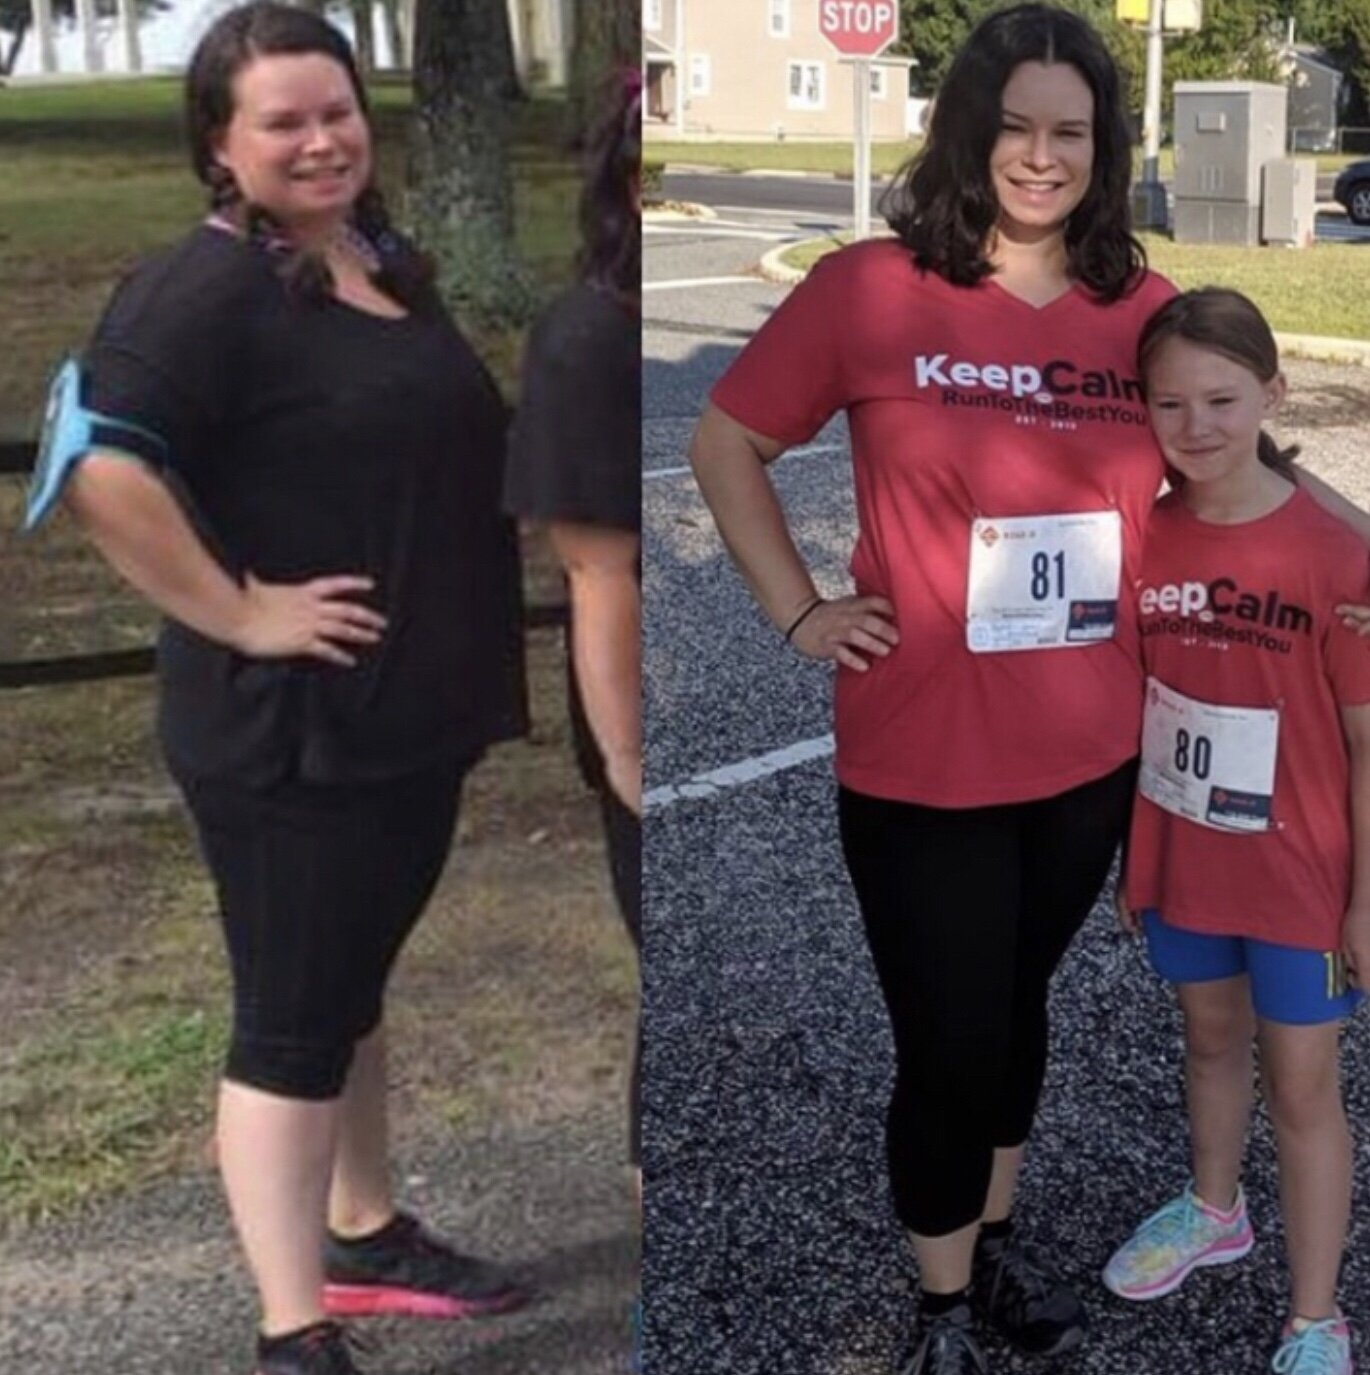 Testimonials: - Happy clients share their results following our easy programs: